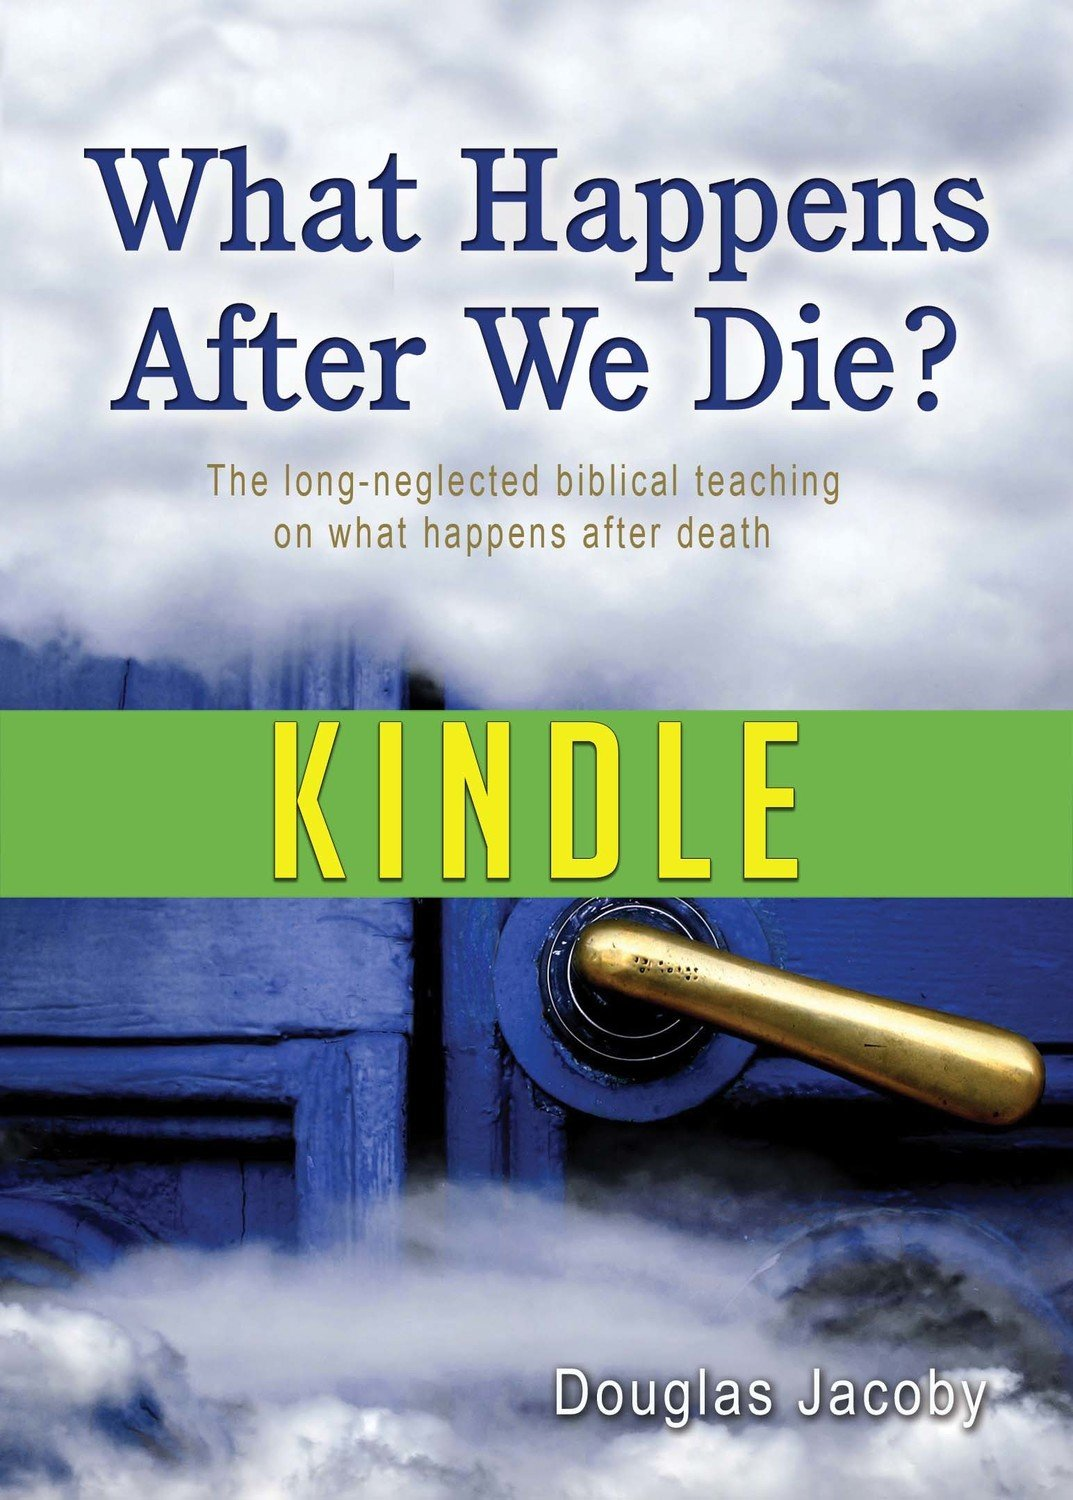 What Happens After We Die? (Kindle)